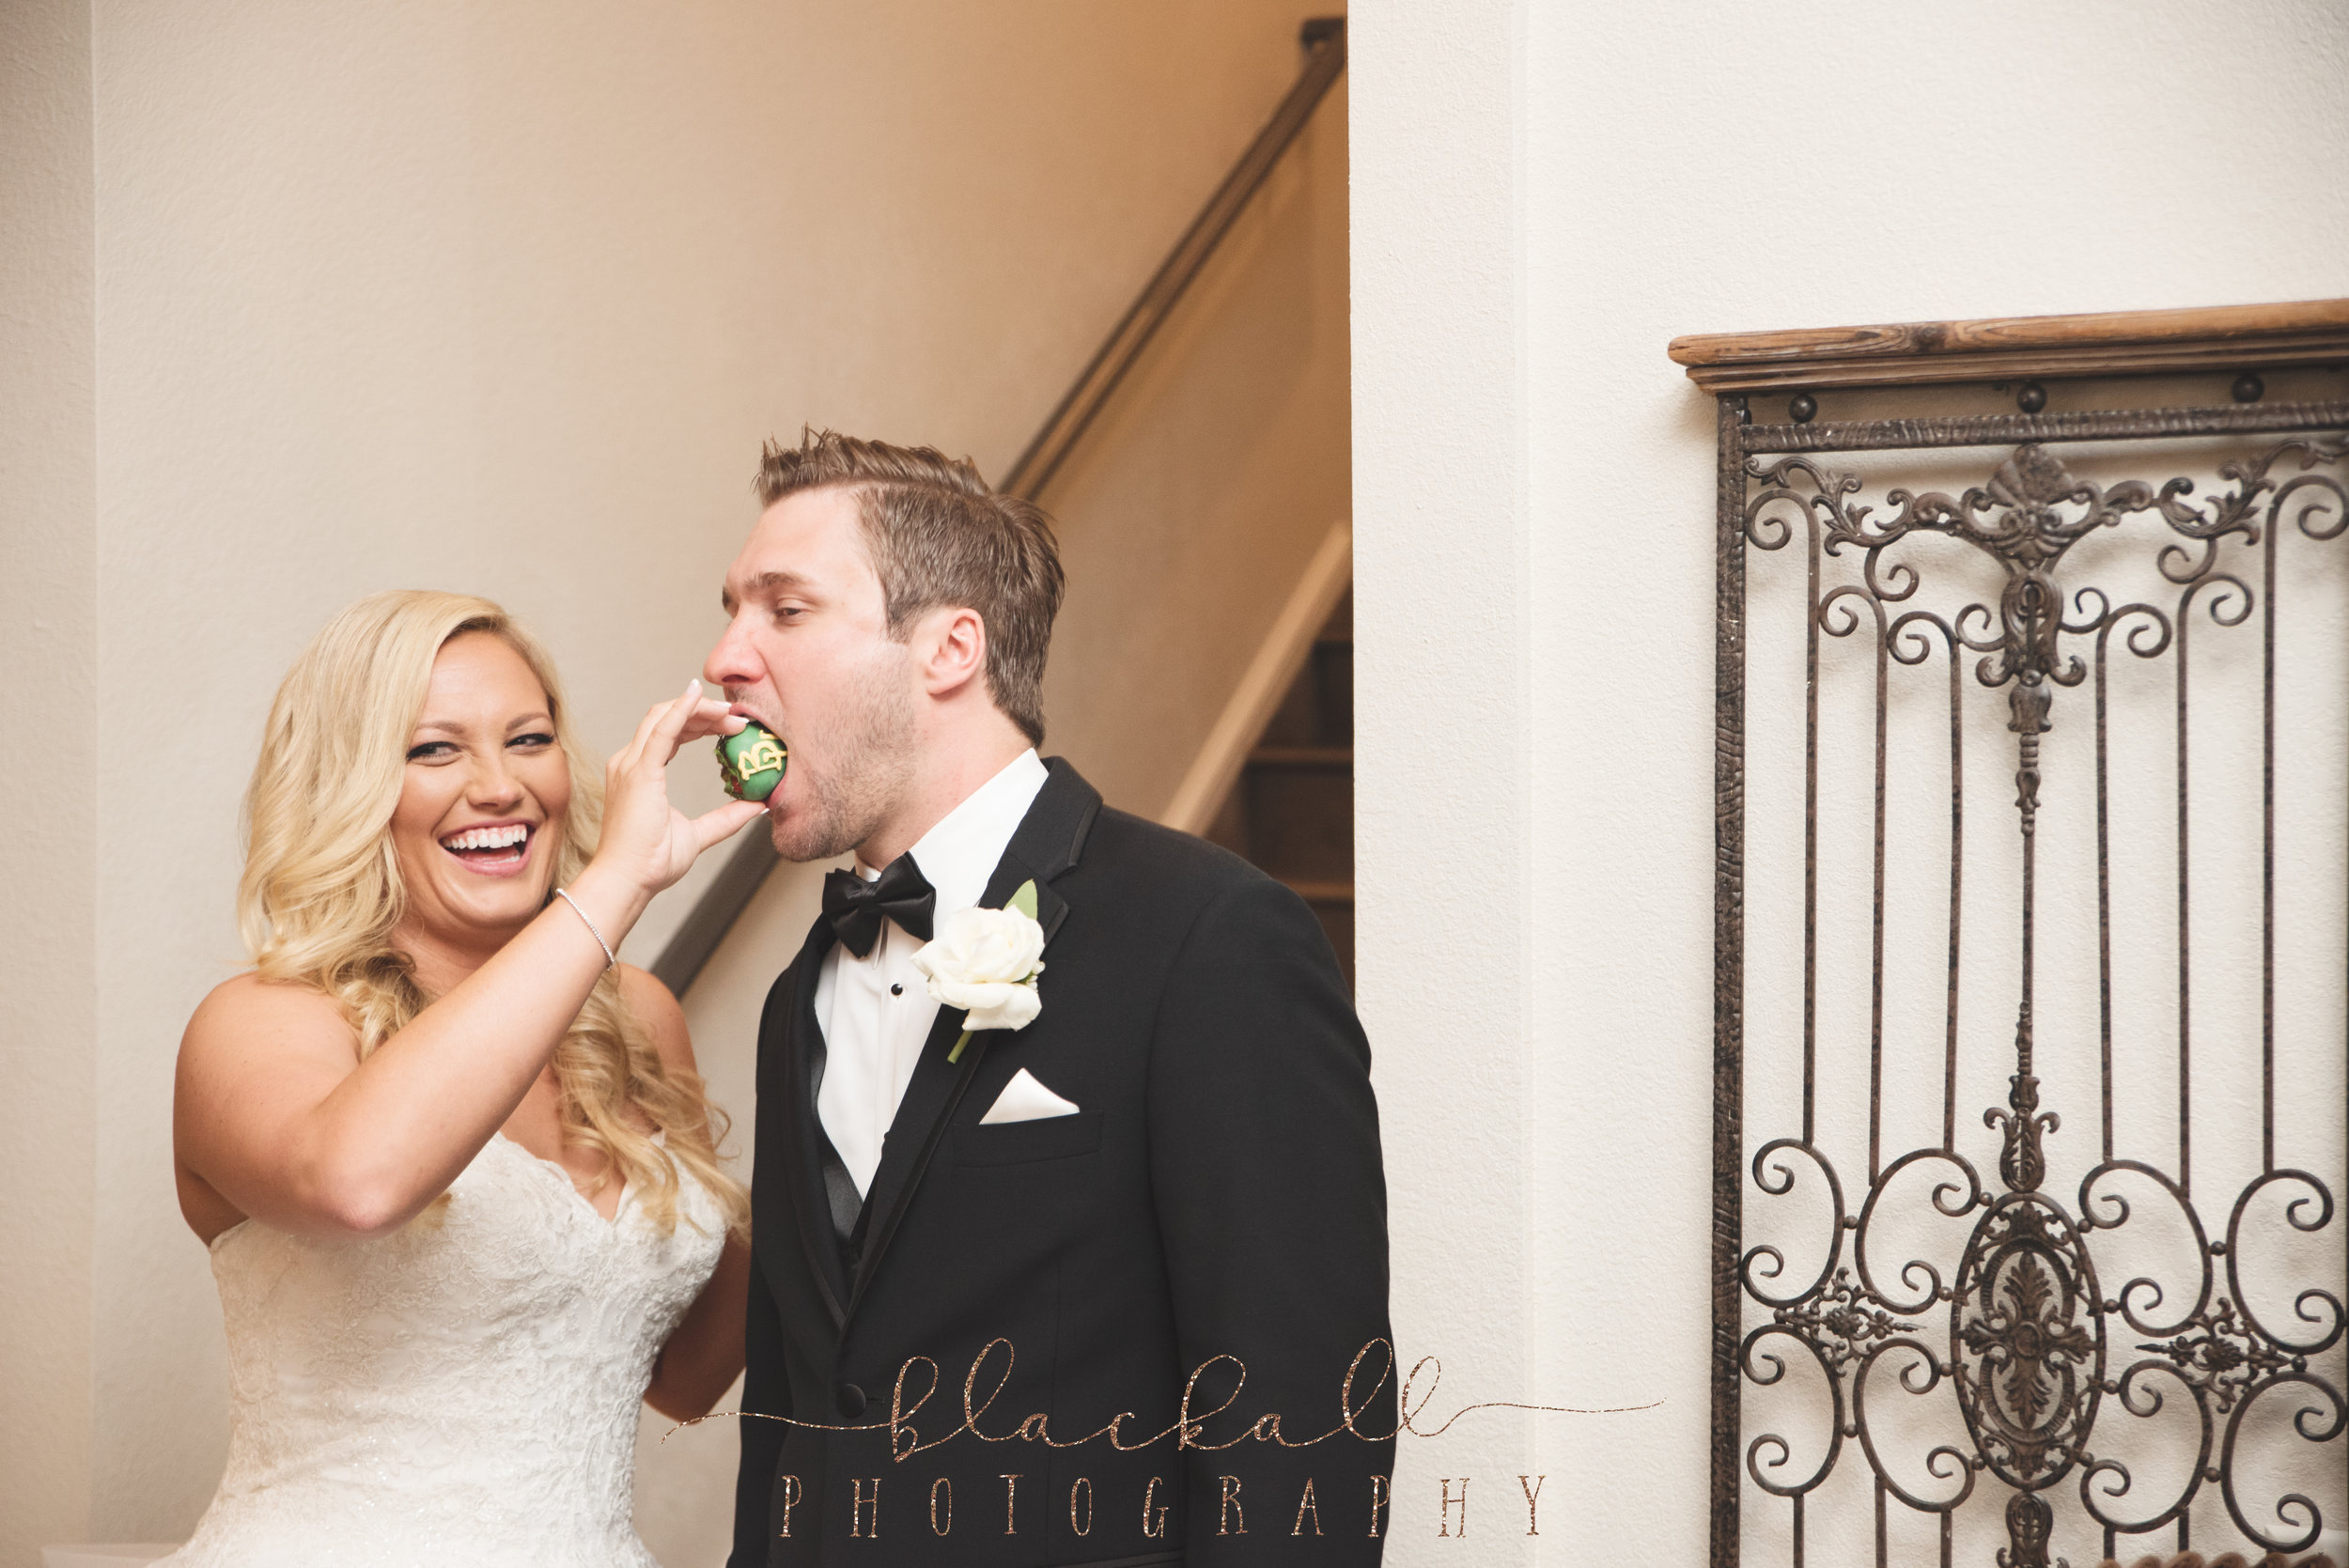 WEDDING_BlackallPhotography_50.JPG